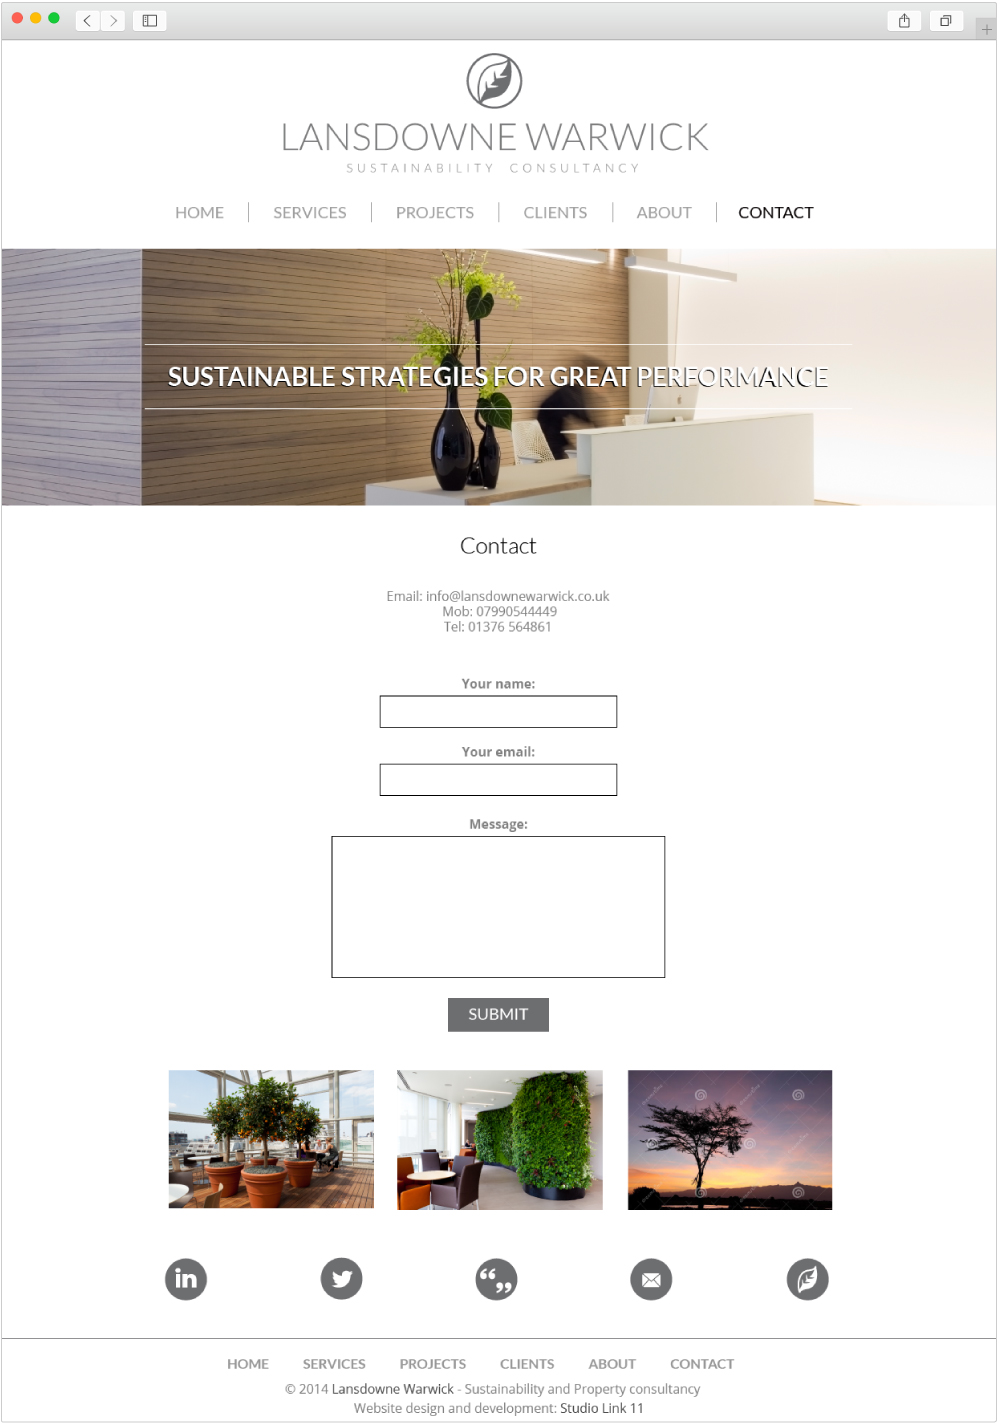 Lansdowne Warwick contact page design by Studio Link 11